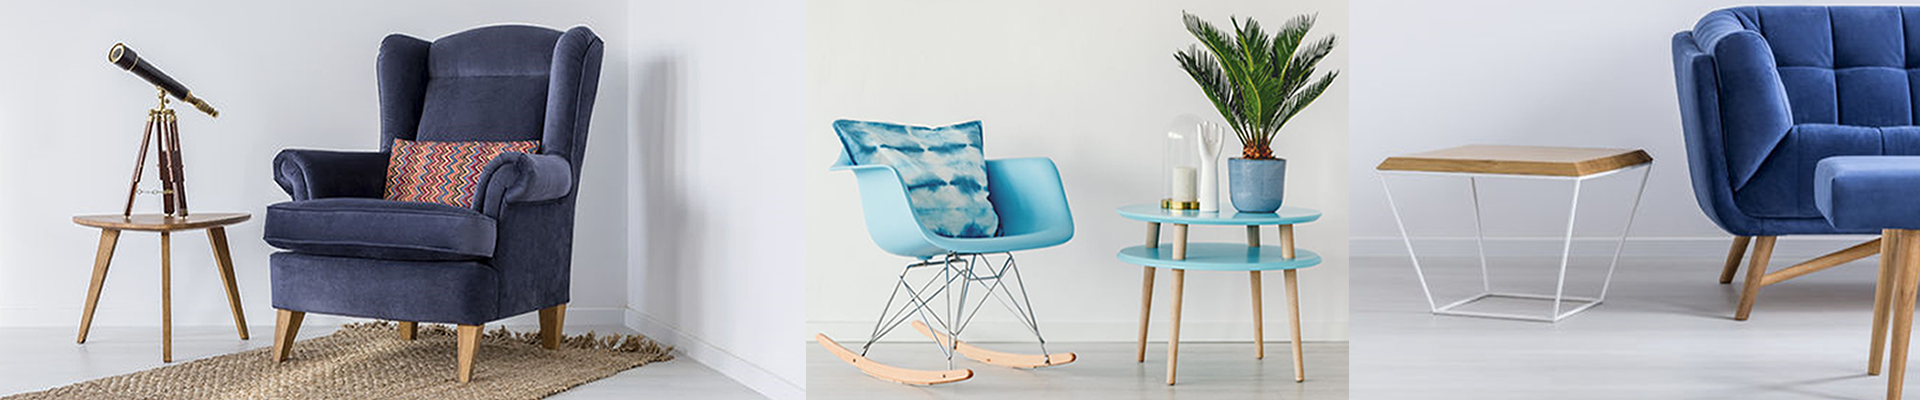 Side Tables | Small Tables for the Living Room